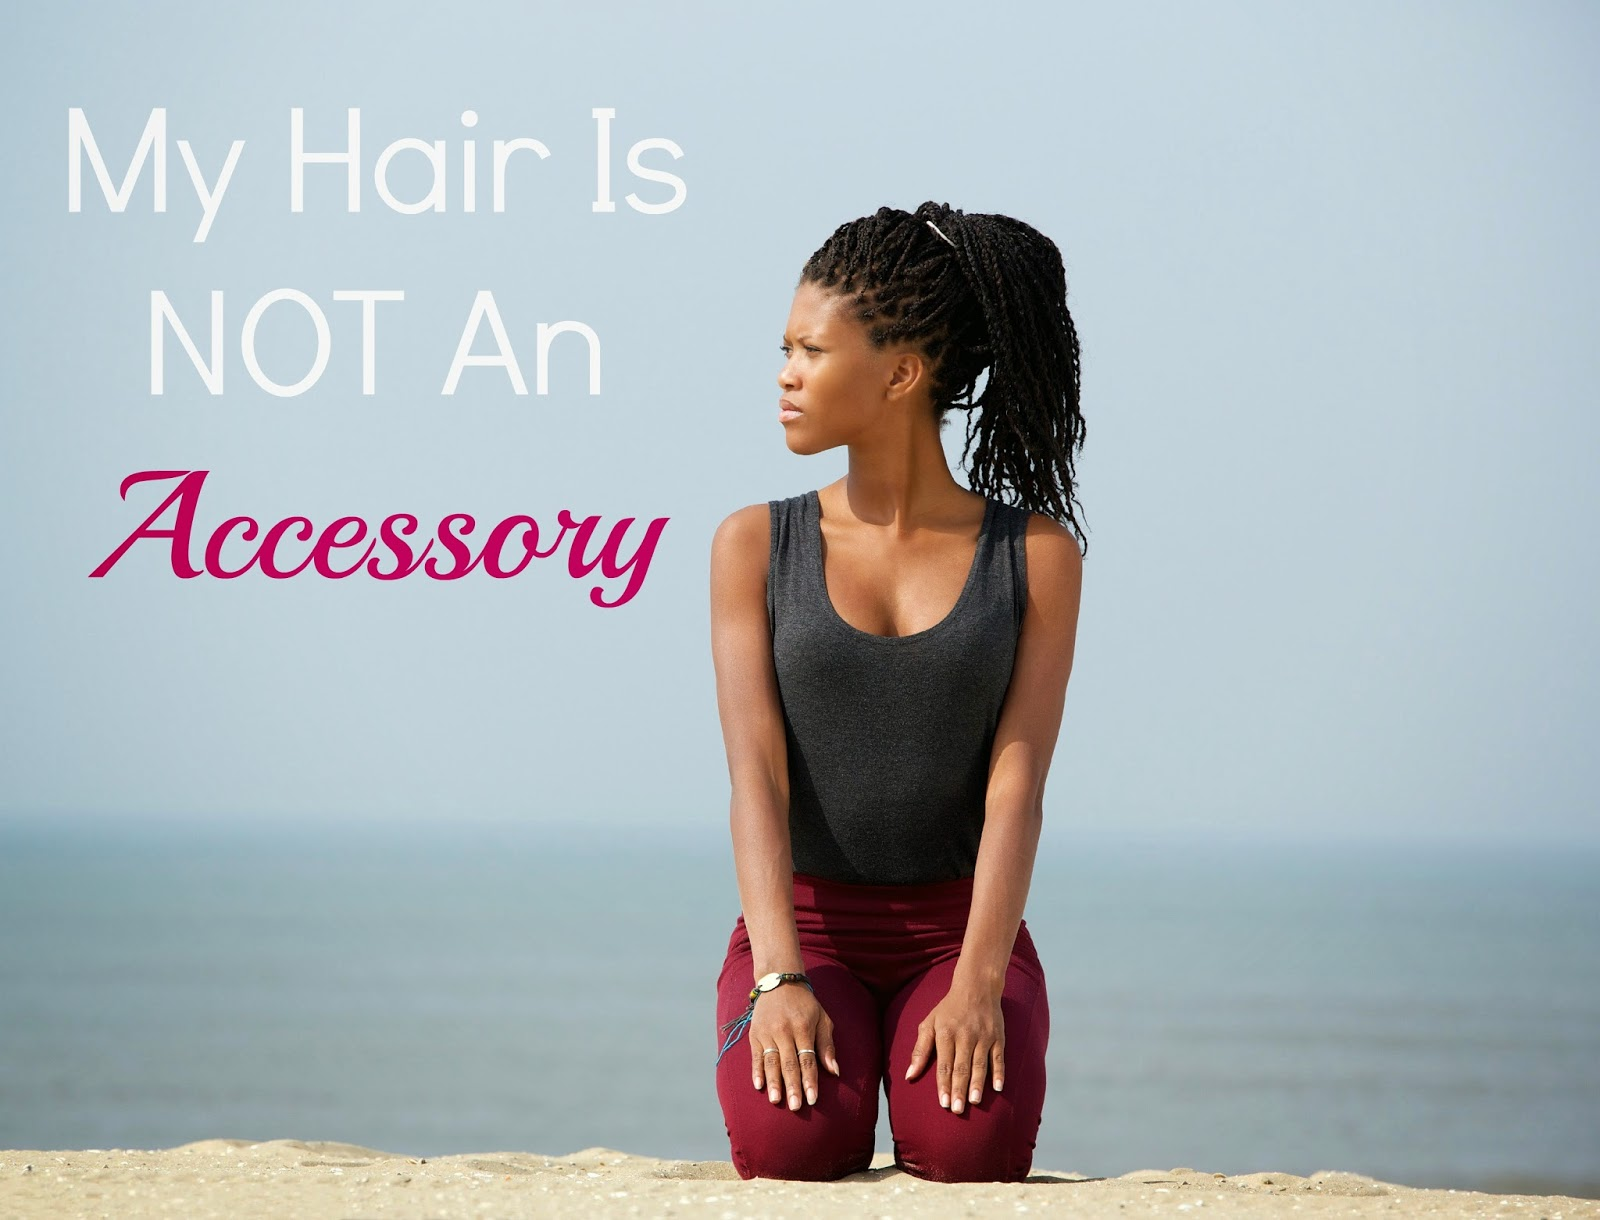 My hair is NOT an accessory